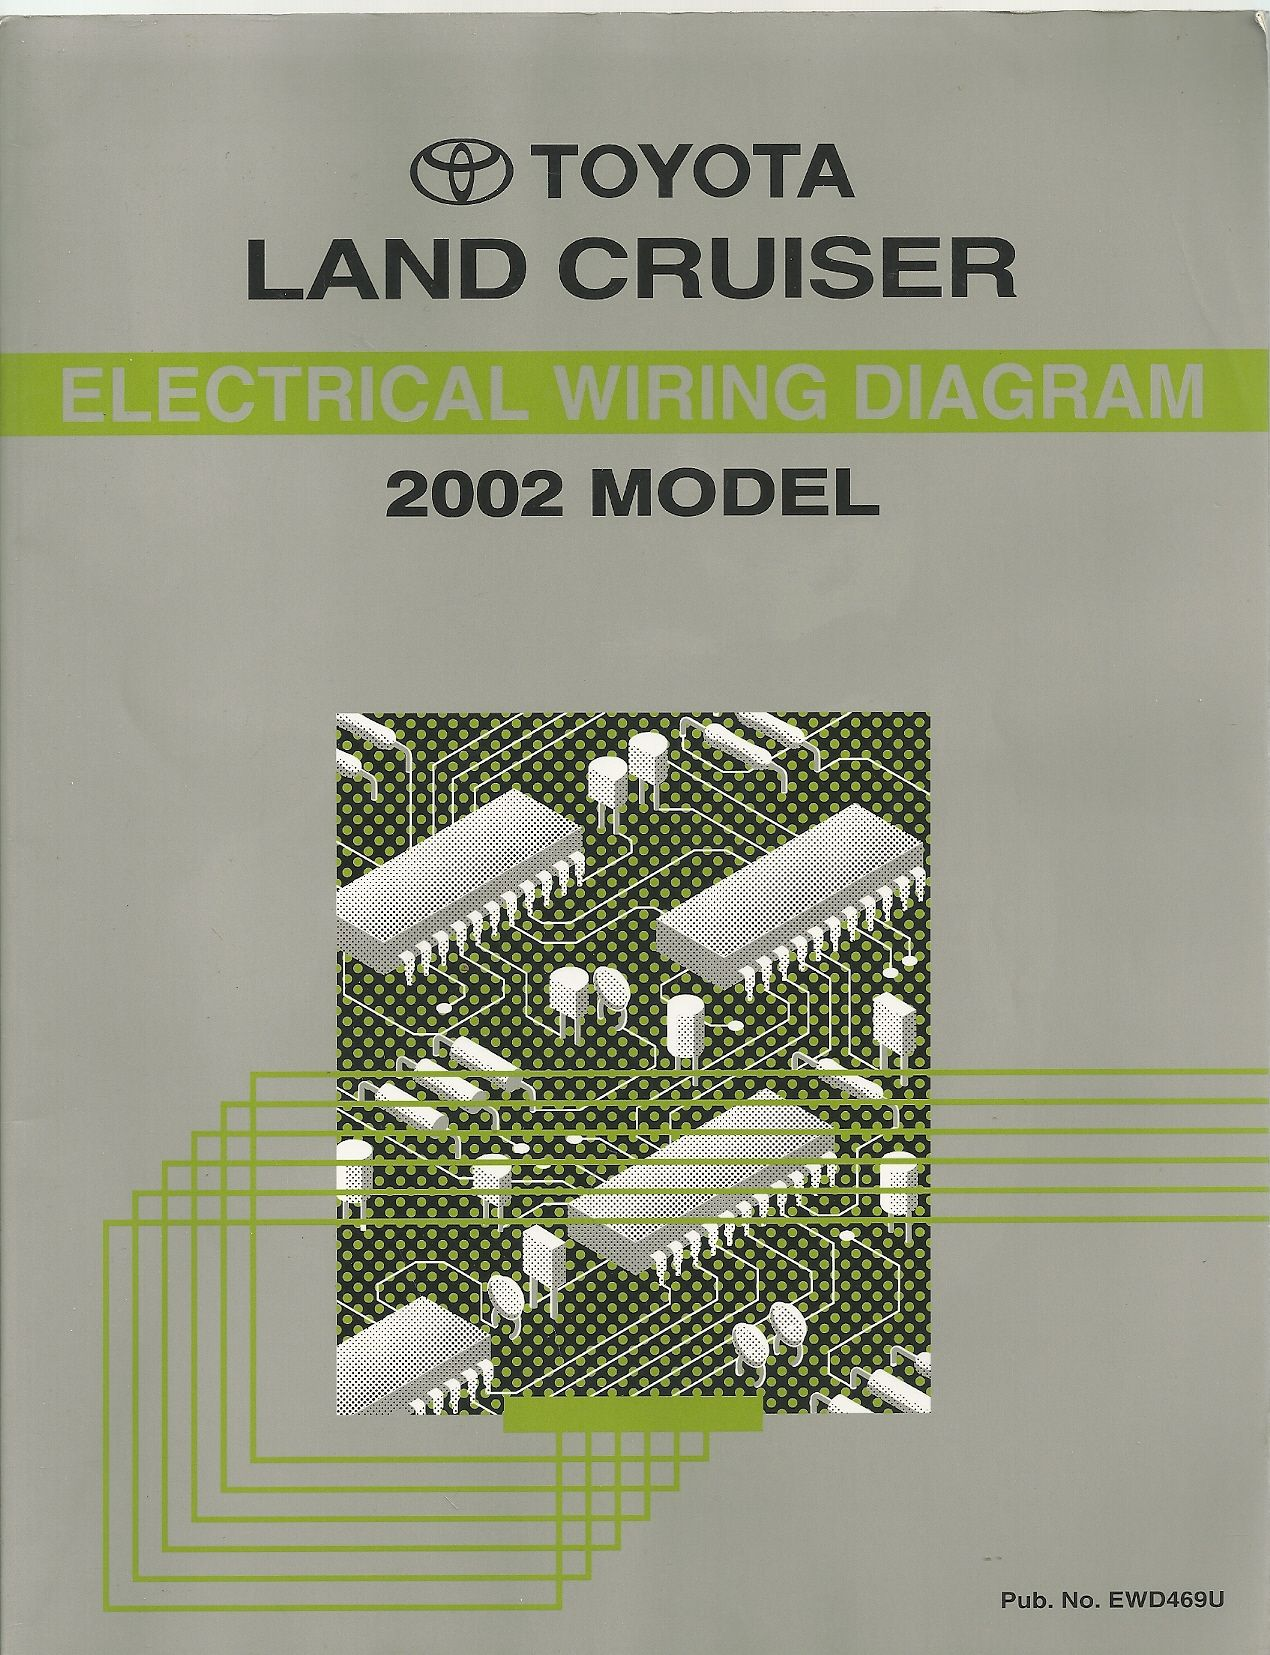 2002 Toyota Land Cruiser Electrical Wiring Diagrams (UZJ100 Series), Toyota Motor Corp